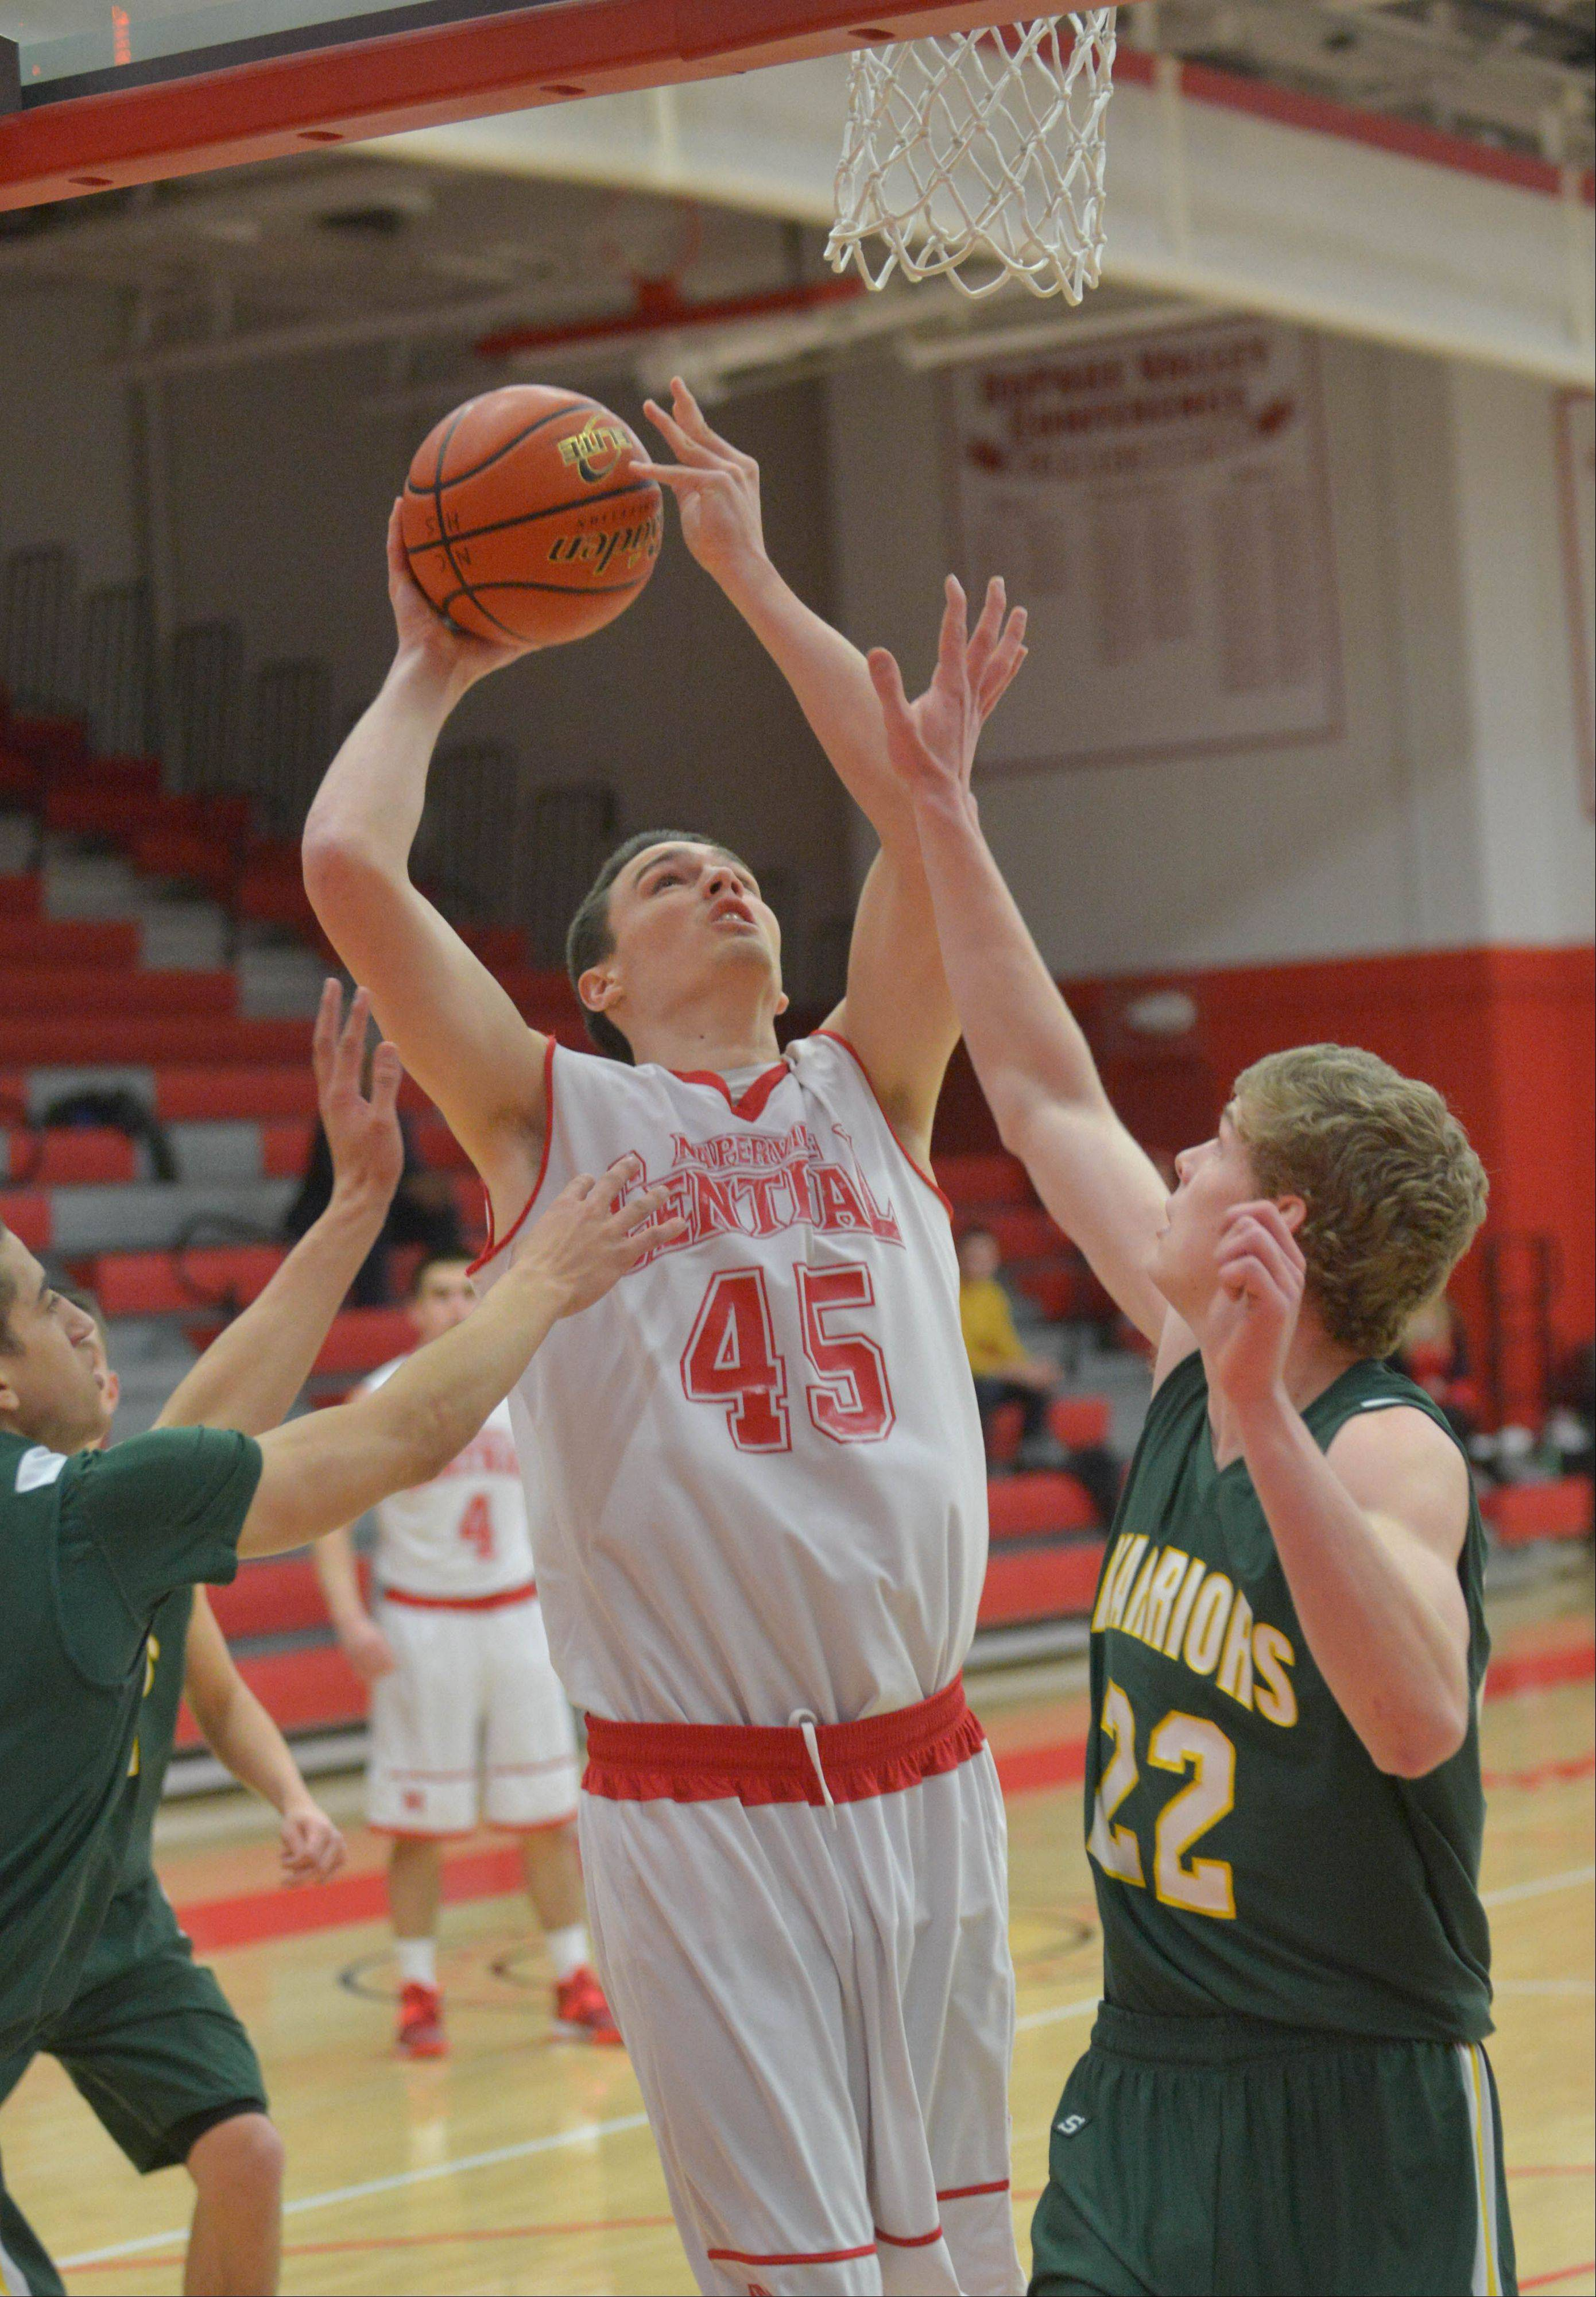 Nick Czarnowski of Naperville Central takes a shot over Jack Cordes of Waubonsie Valley.